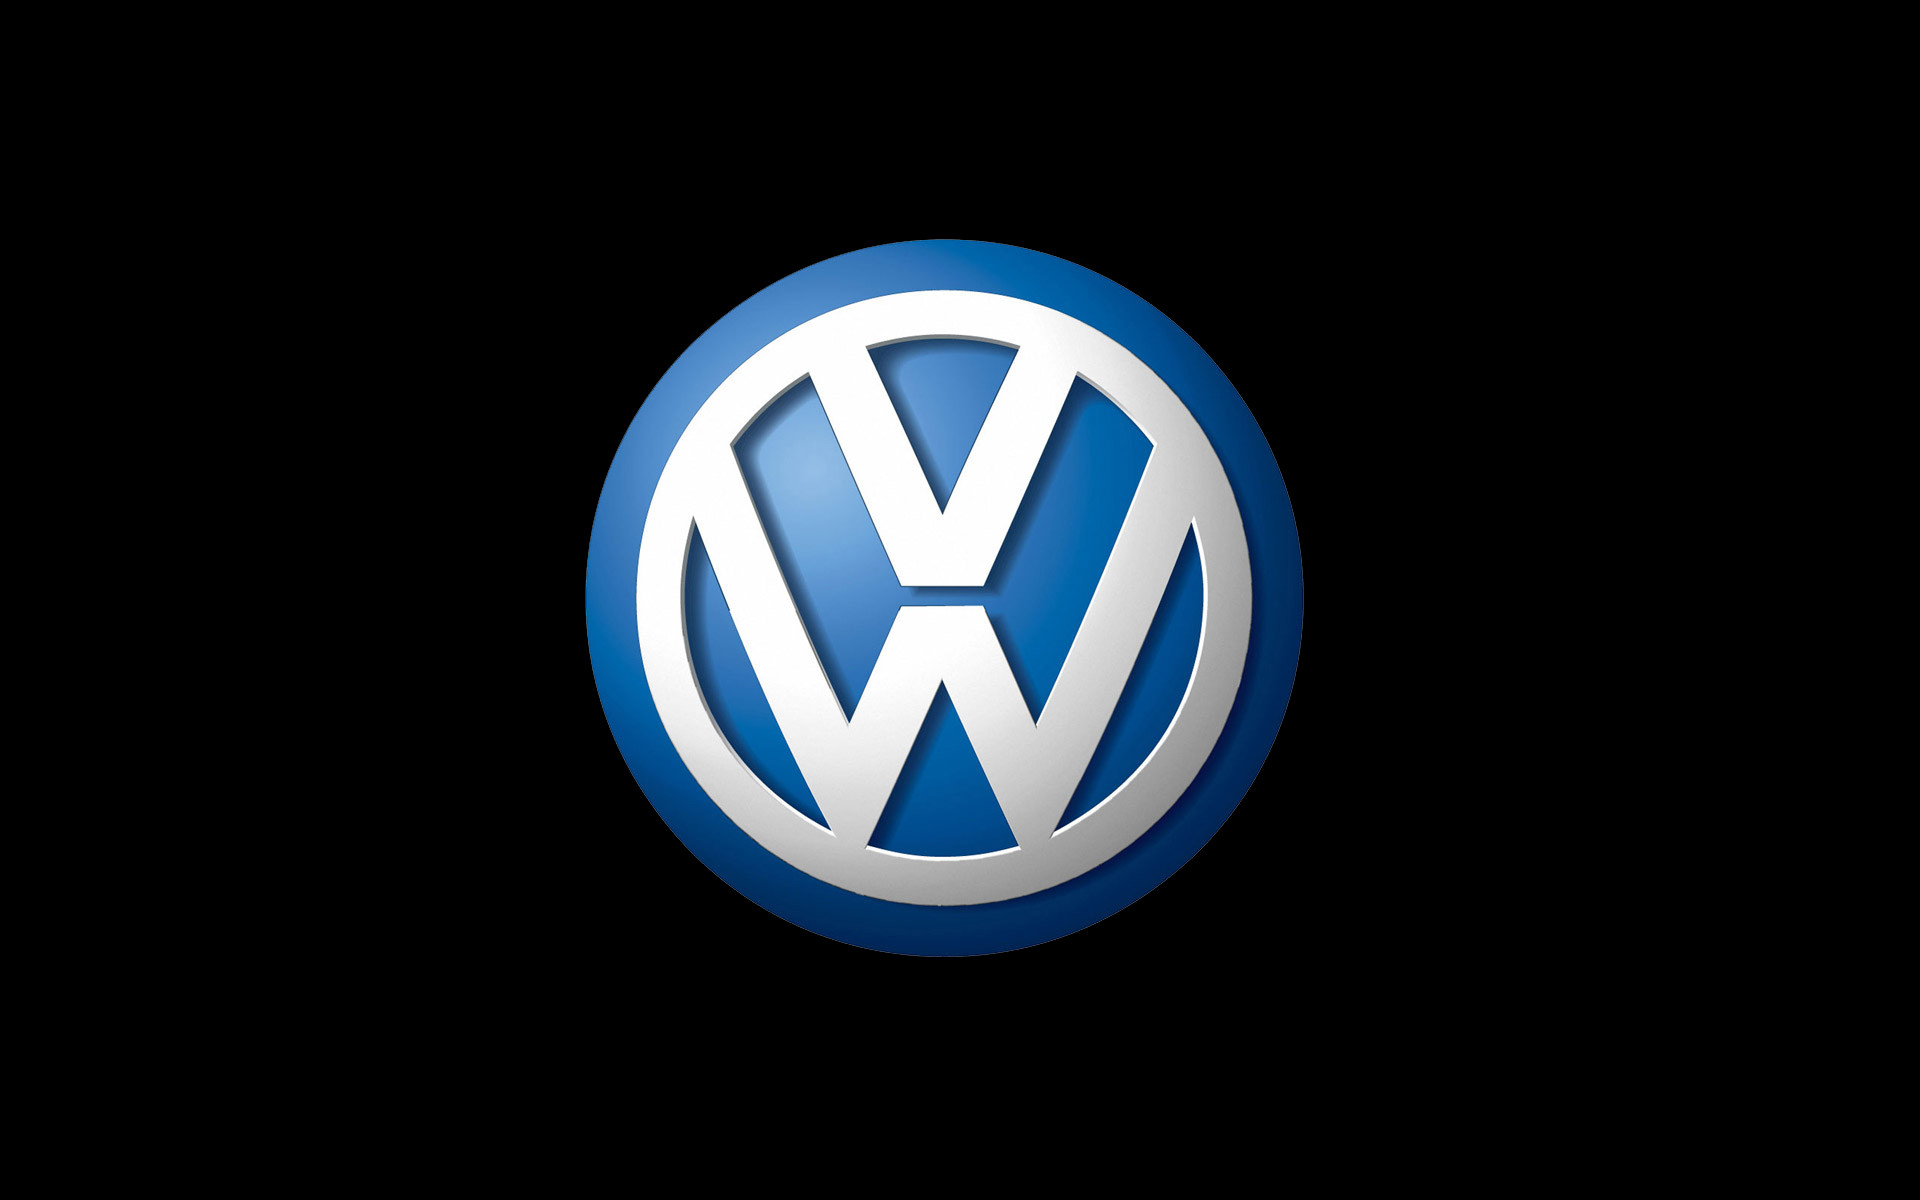 3d Wallpaper Images Free Download Vw Logo Wallpapers 60 Images